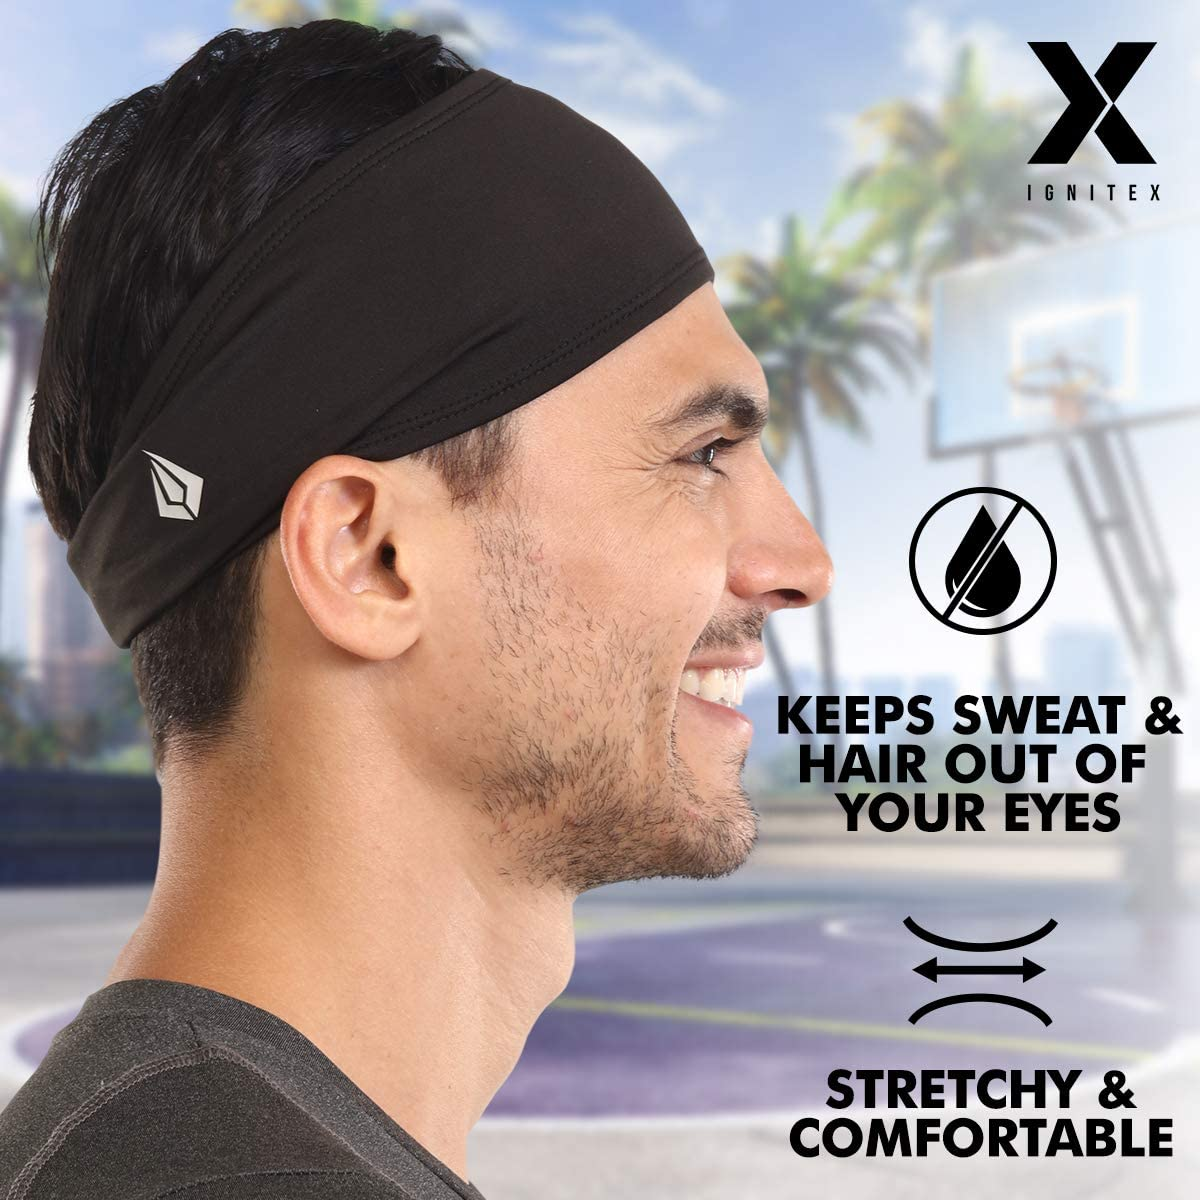 Football Baseball Mens Headband Basketball Exercise Performance Stretch Hairband /& Moisture Wicking Cycling Yoga Tennis Athletic Sweatbands for Running Sports /& Workout Sweat Head Bands